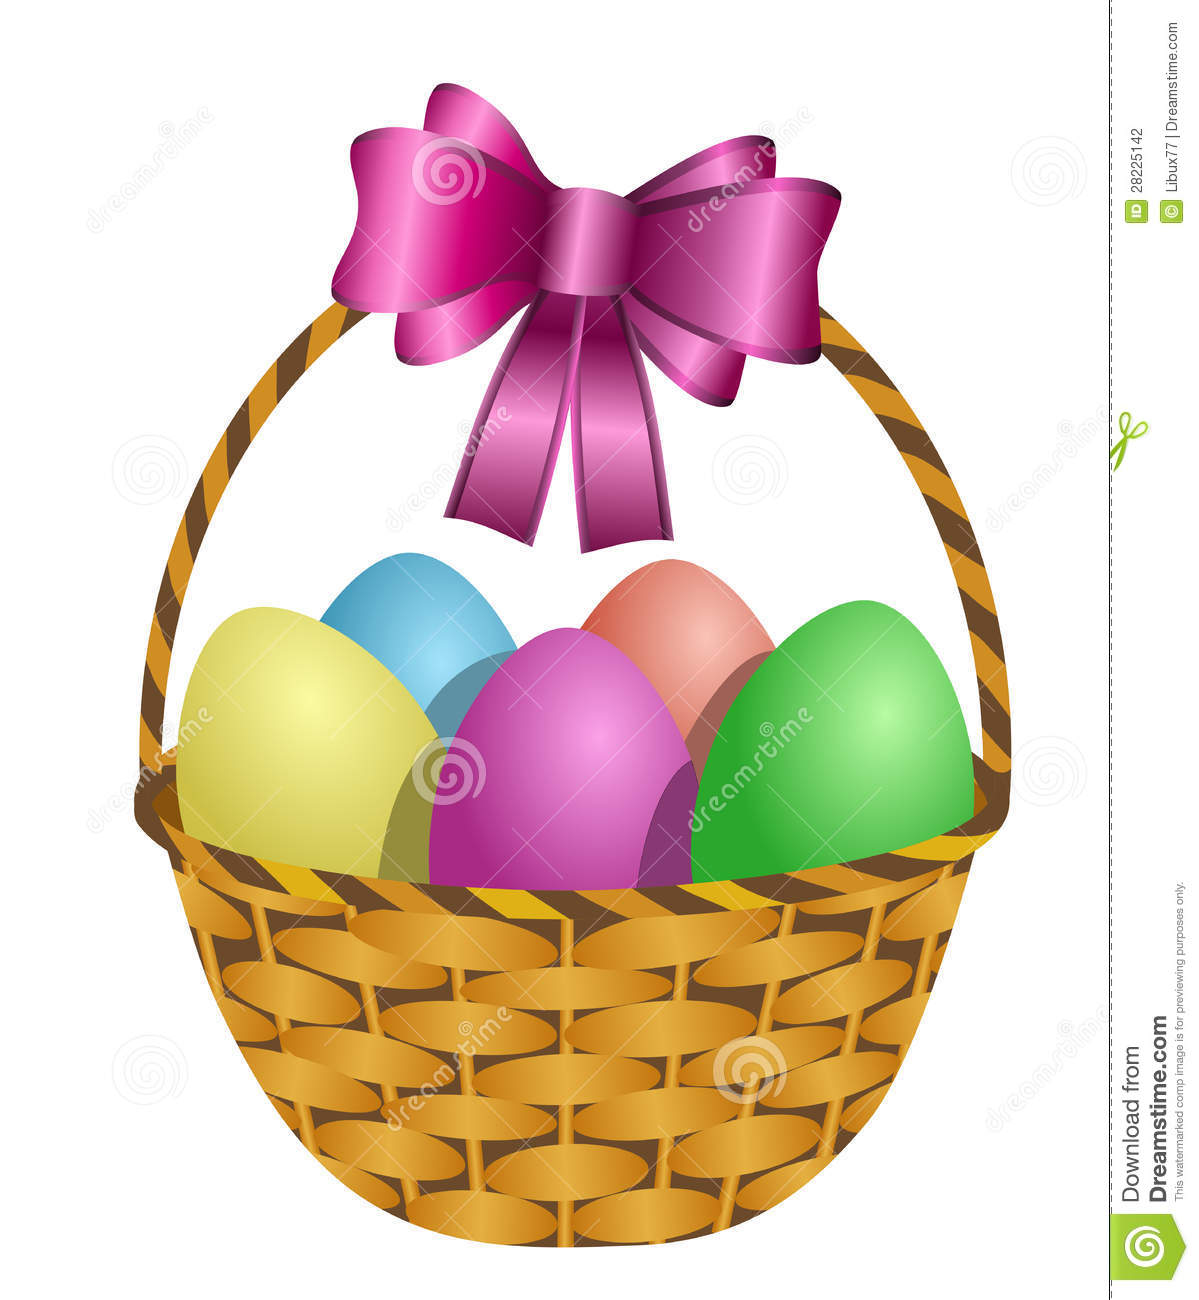 clip art for easter baskets - photo #36